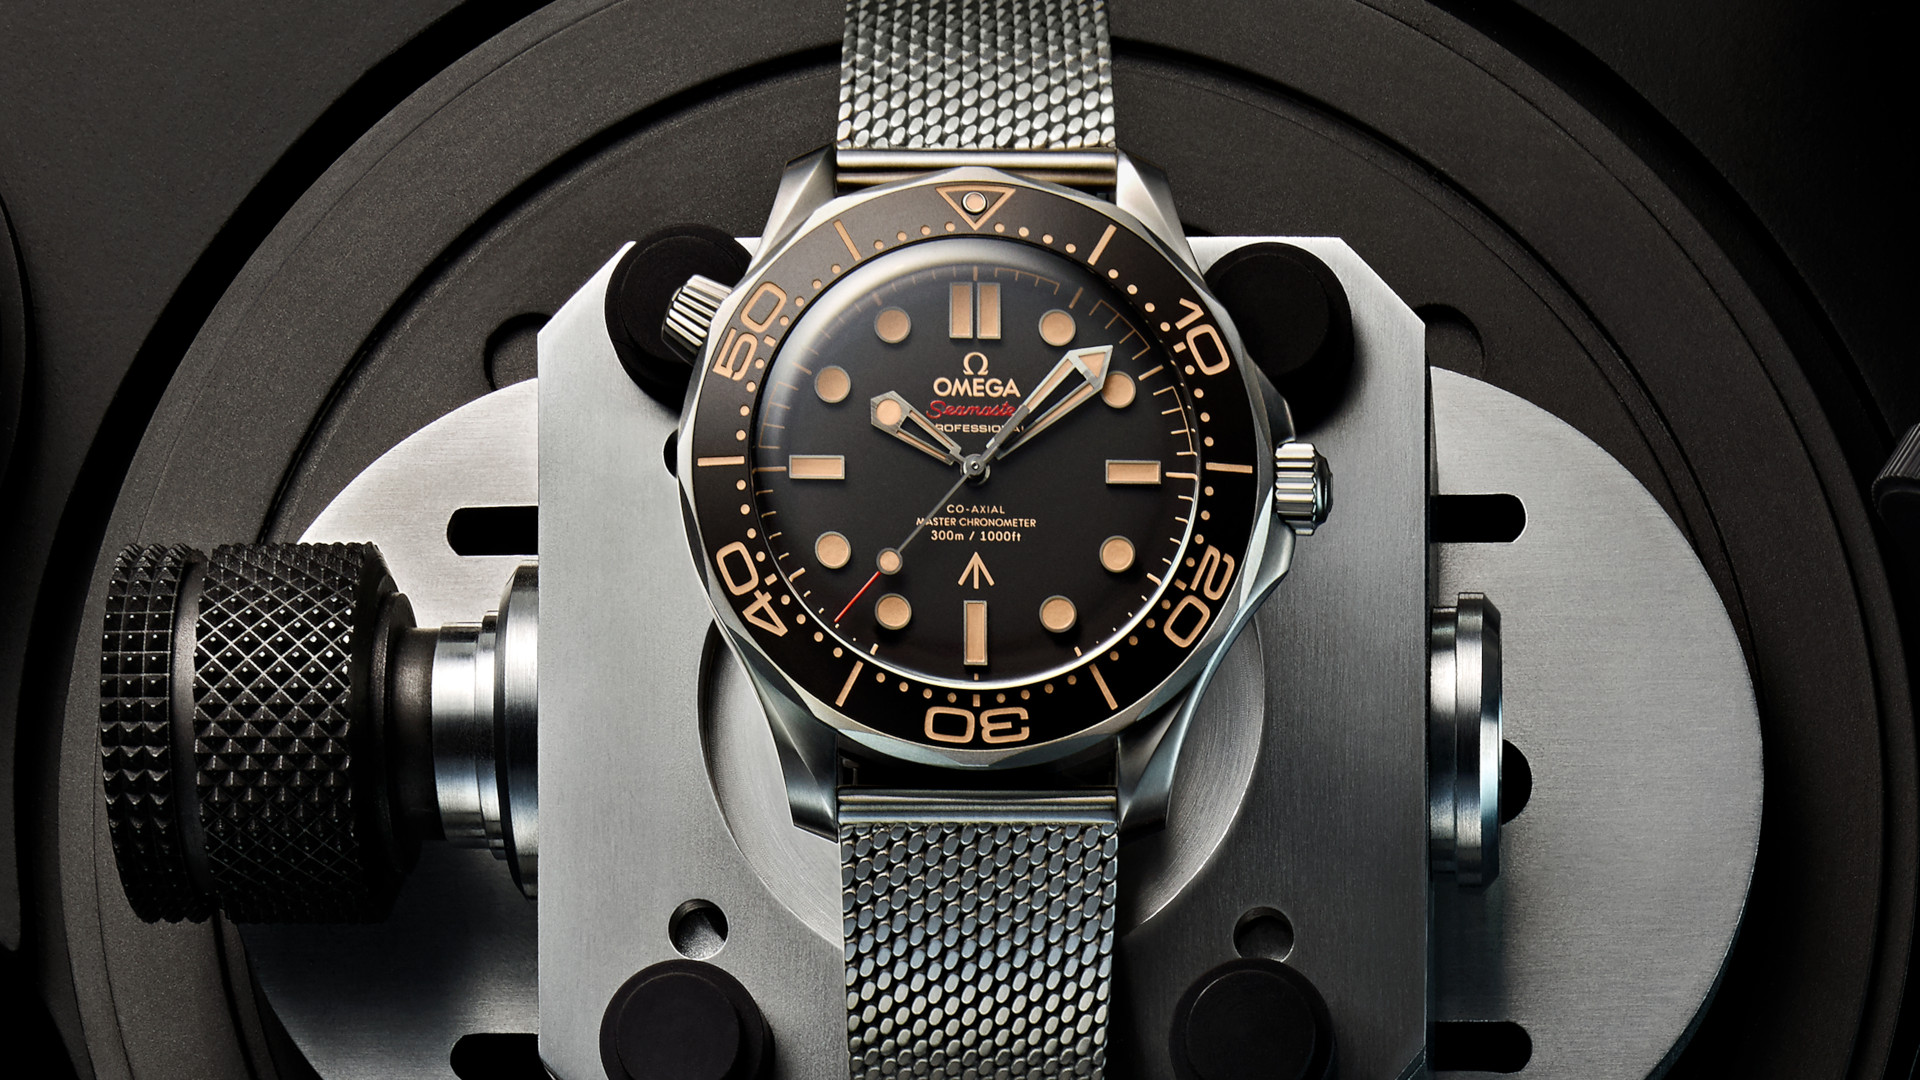 The new James Bond Seamaster Diver 300M harks back to Omega's vintage military roots